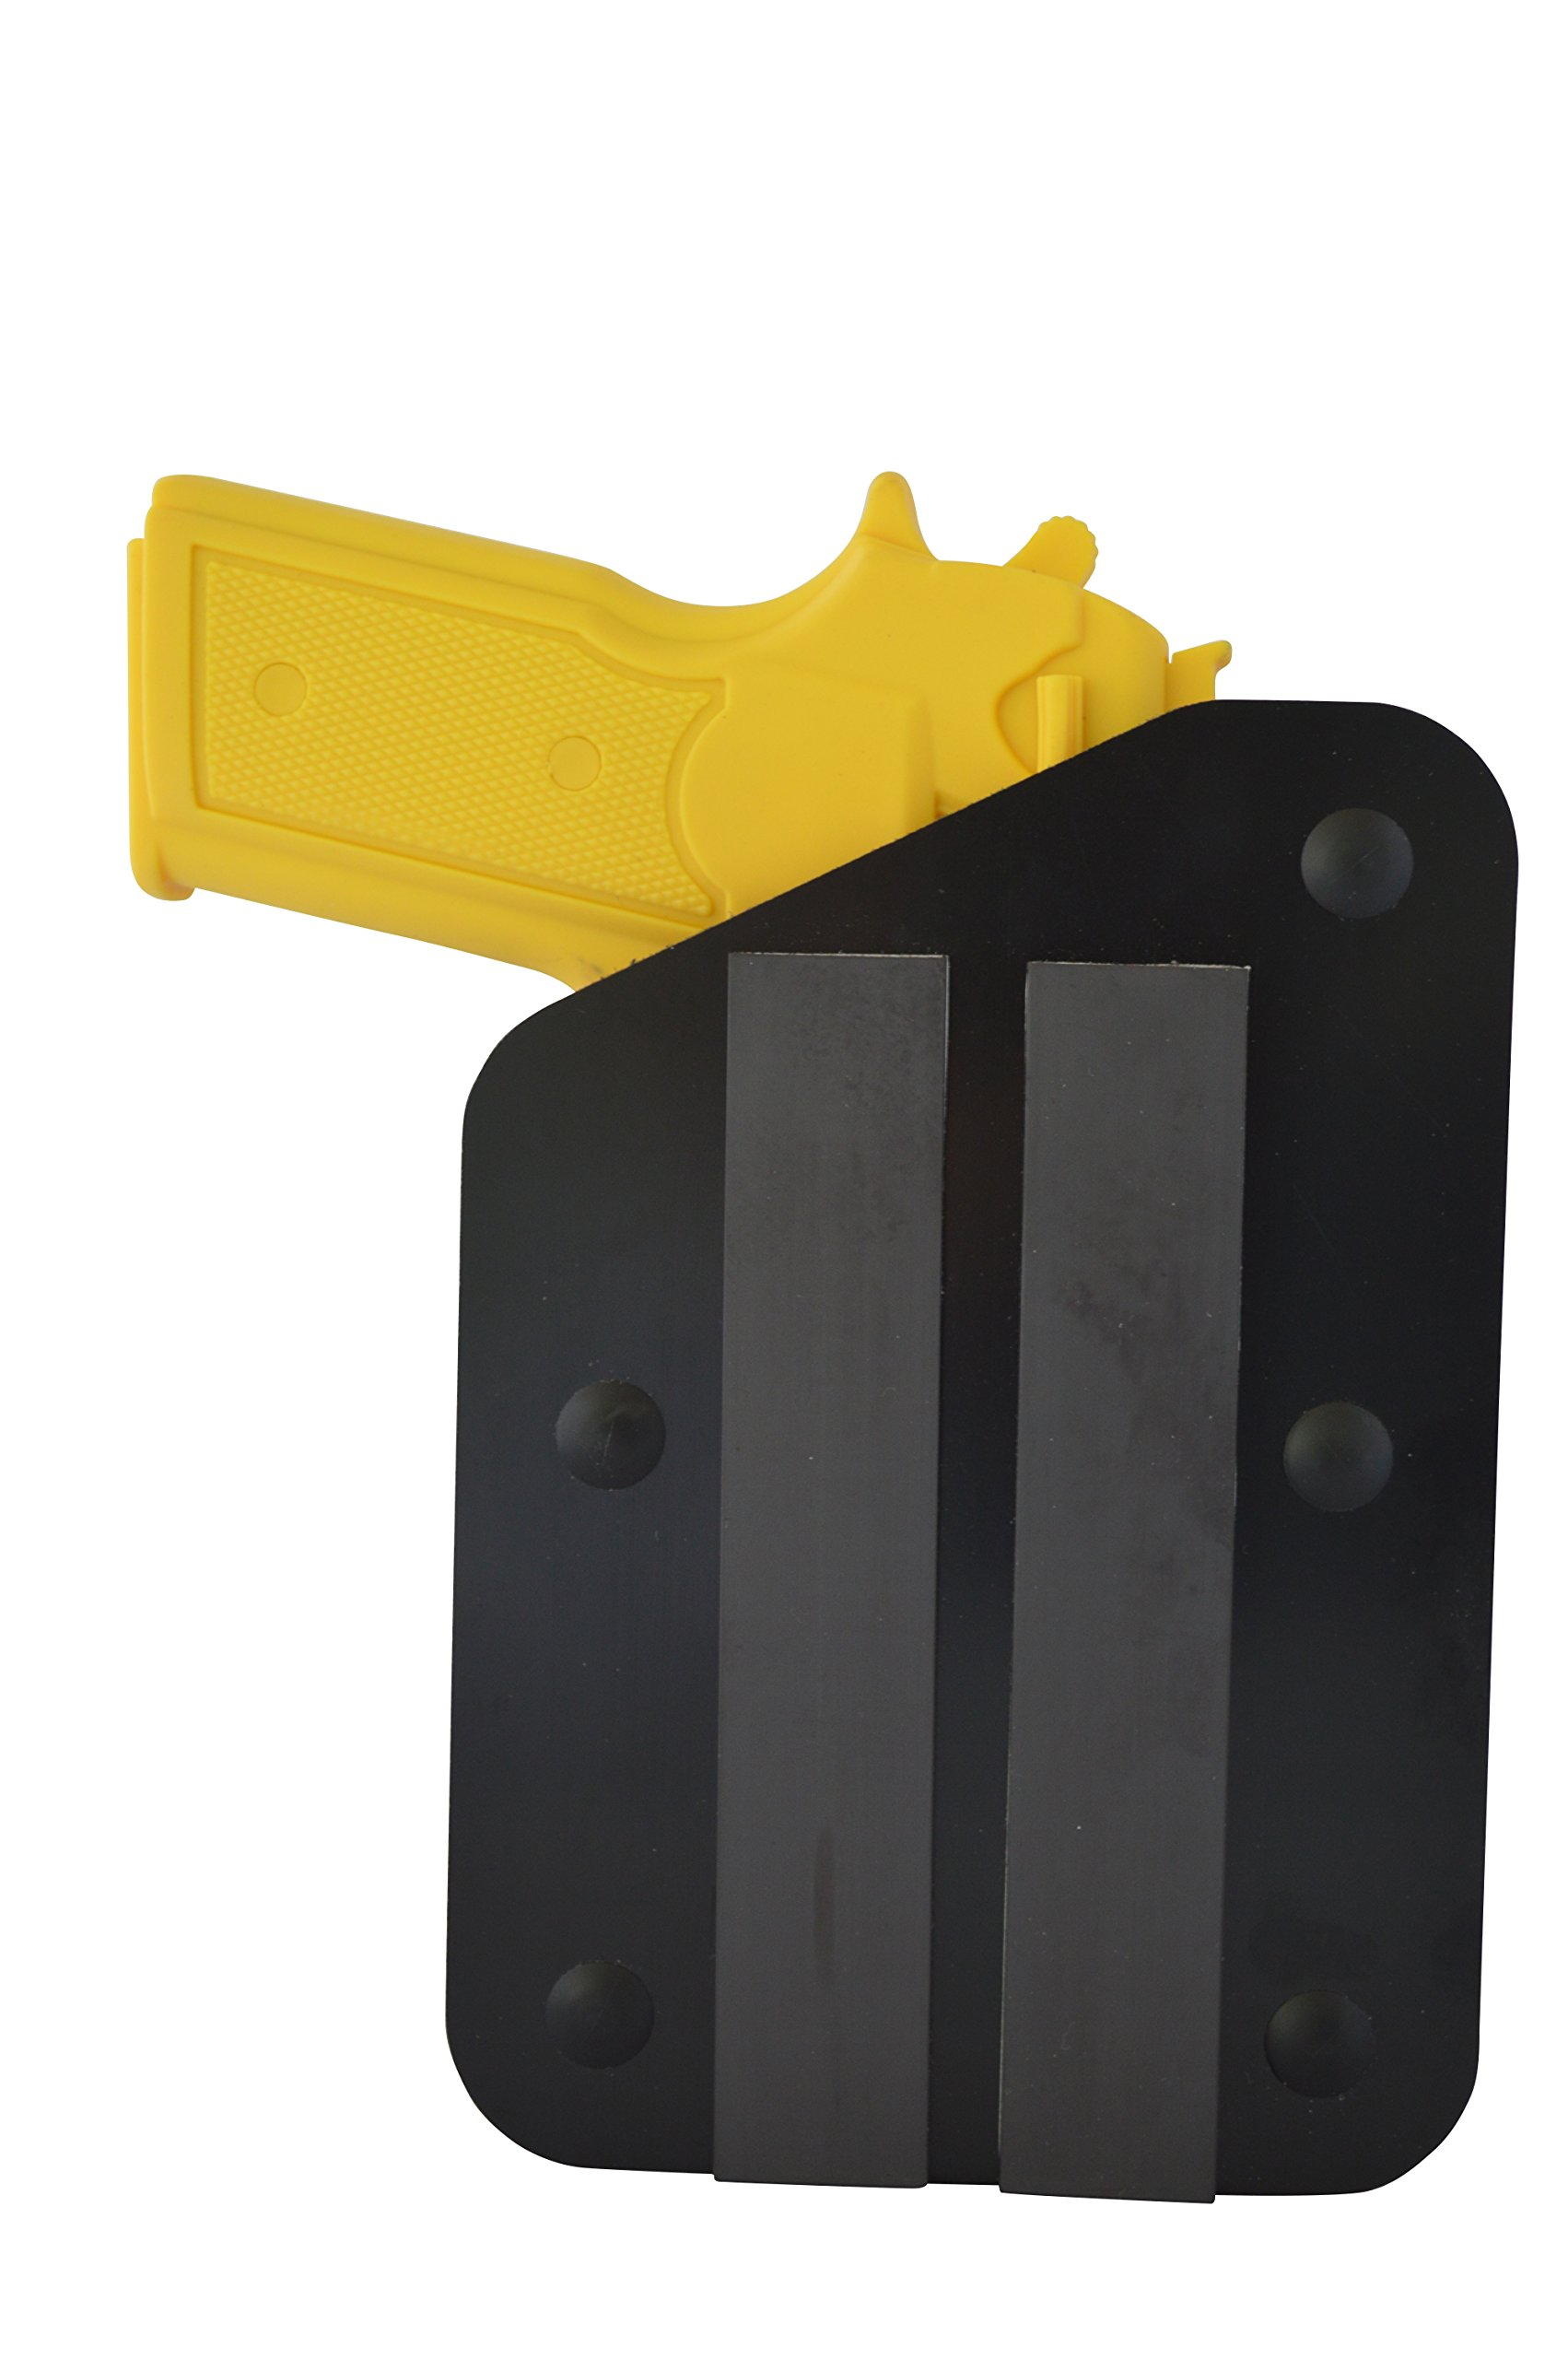 Benchmaster - Weapon Rack - Single (1) Gun Pistol Rack - Left -Magnetic Strip - Gun Safe Storage Accessories - Gun Rack by BenchMaster